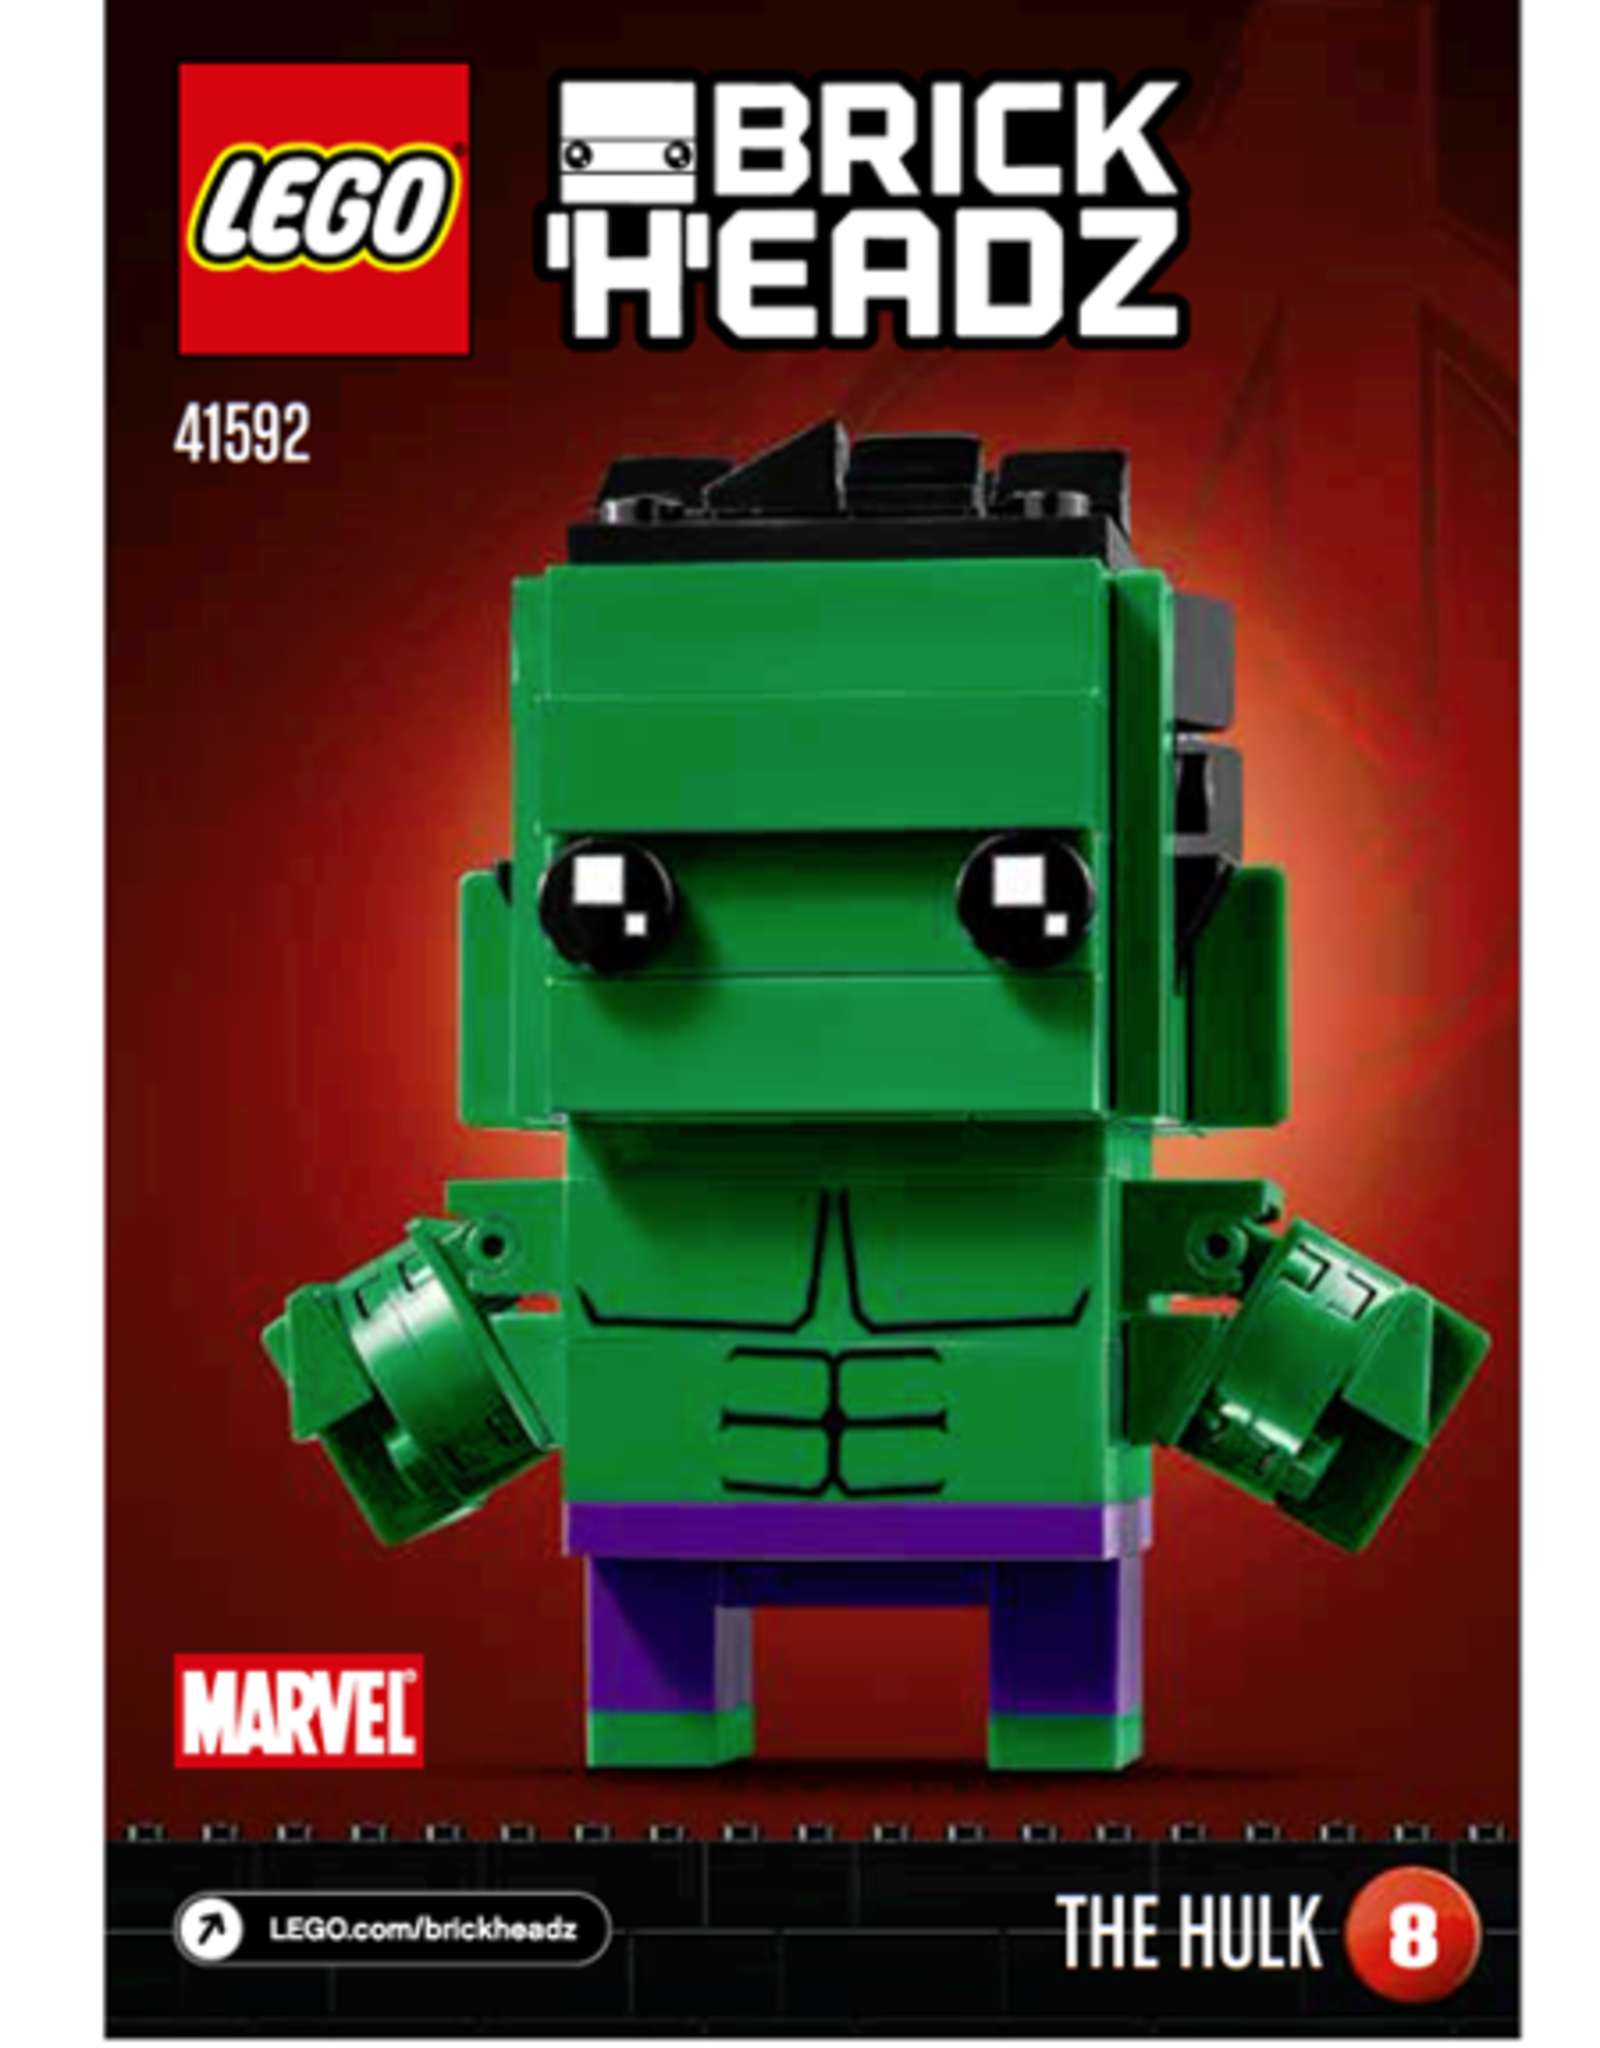 LEGO LEGO 41592 The Hulk BrickHeadz - SPECIALS